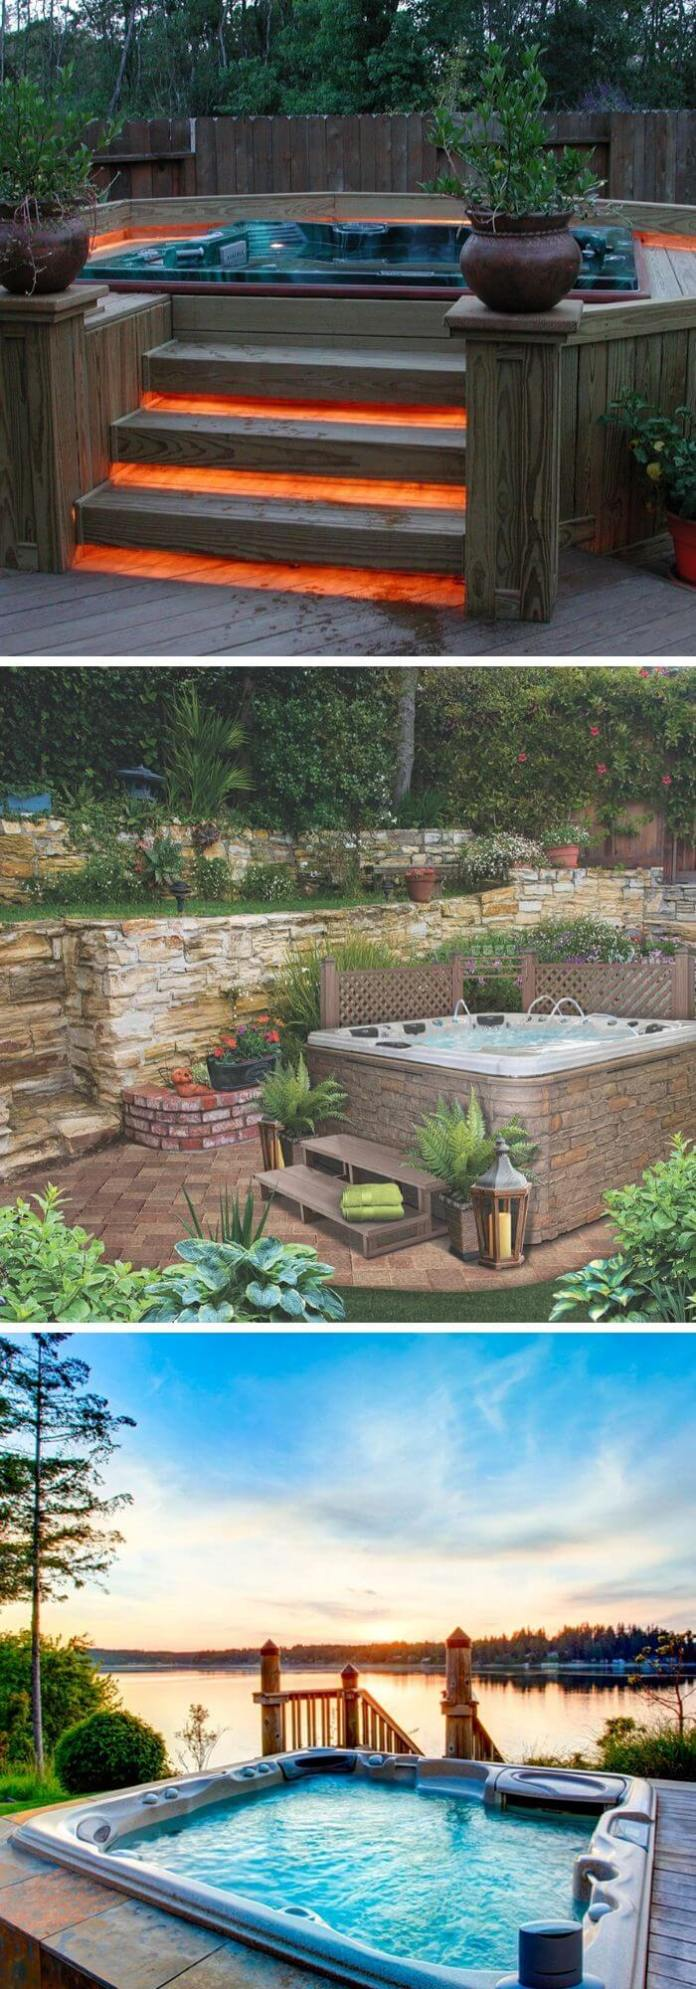 The Hot Tub Backyard